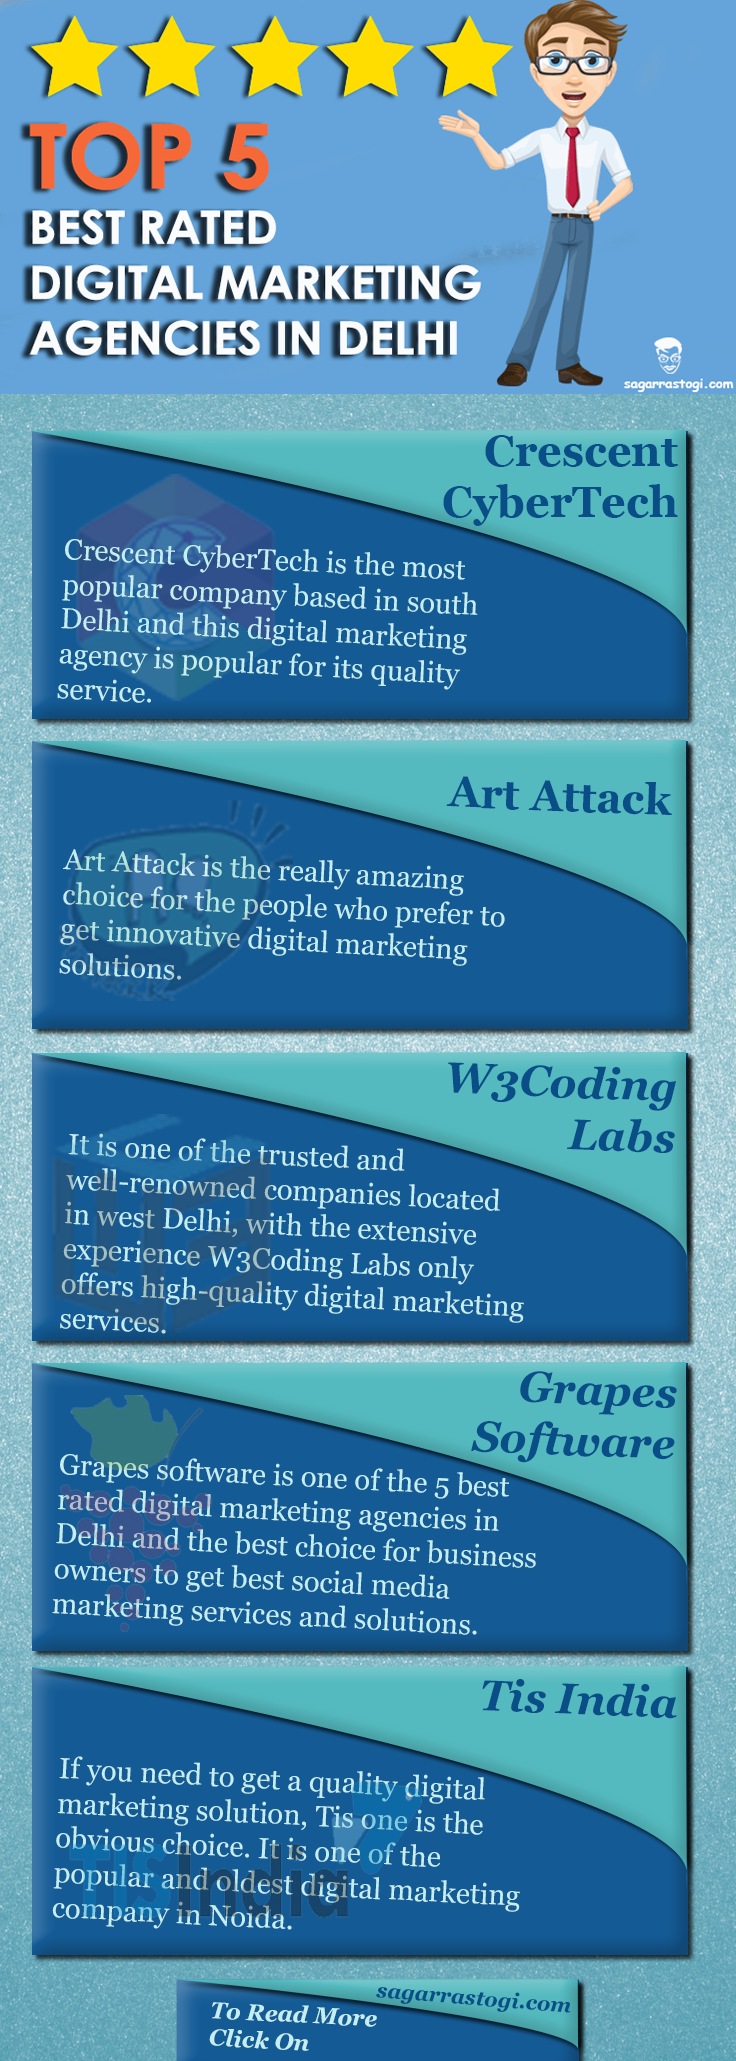 Top 5 best rated digital marketing companies in delhi